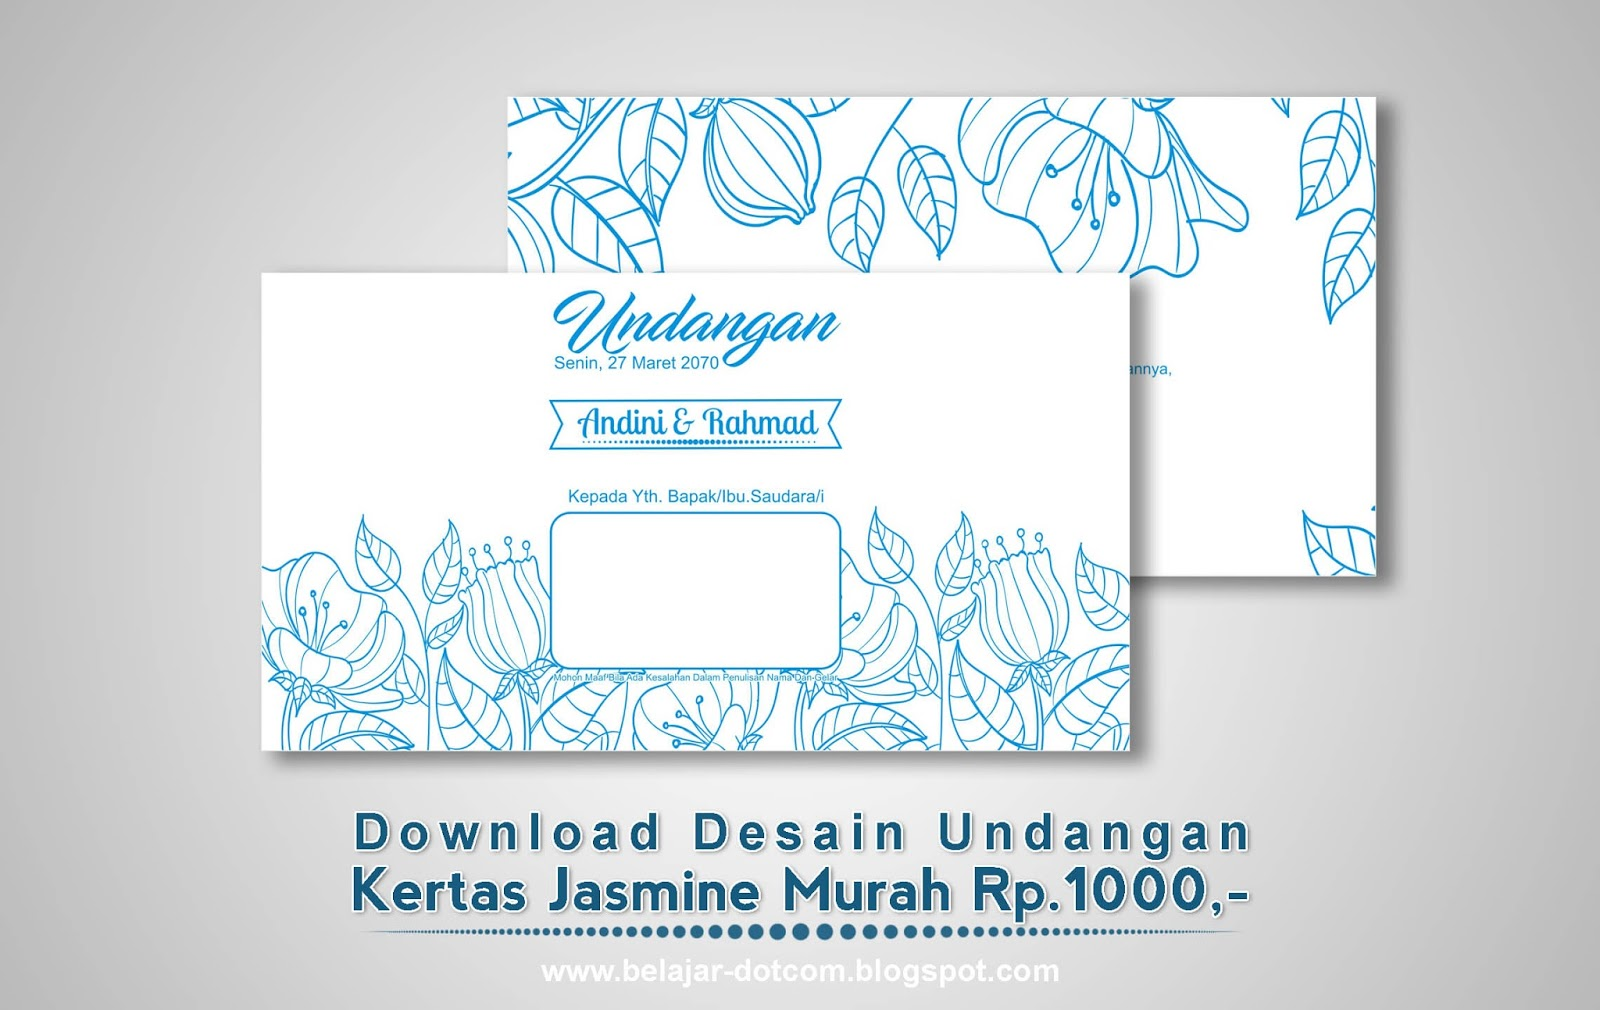 74 Foto Download Desain Undangan Pernikahan Islami HD Terbaru Download Gratis